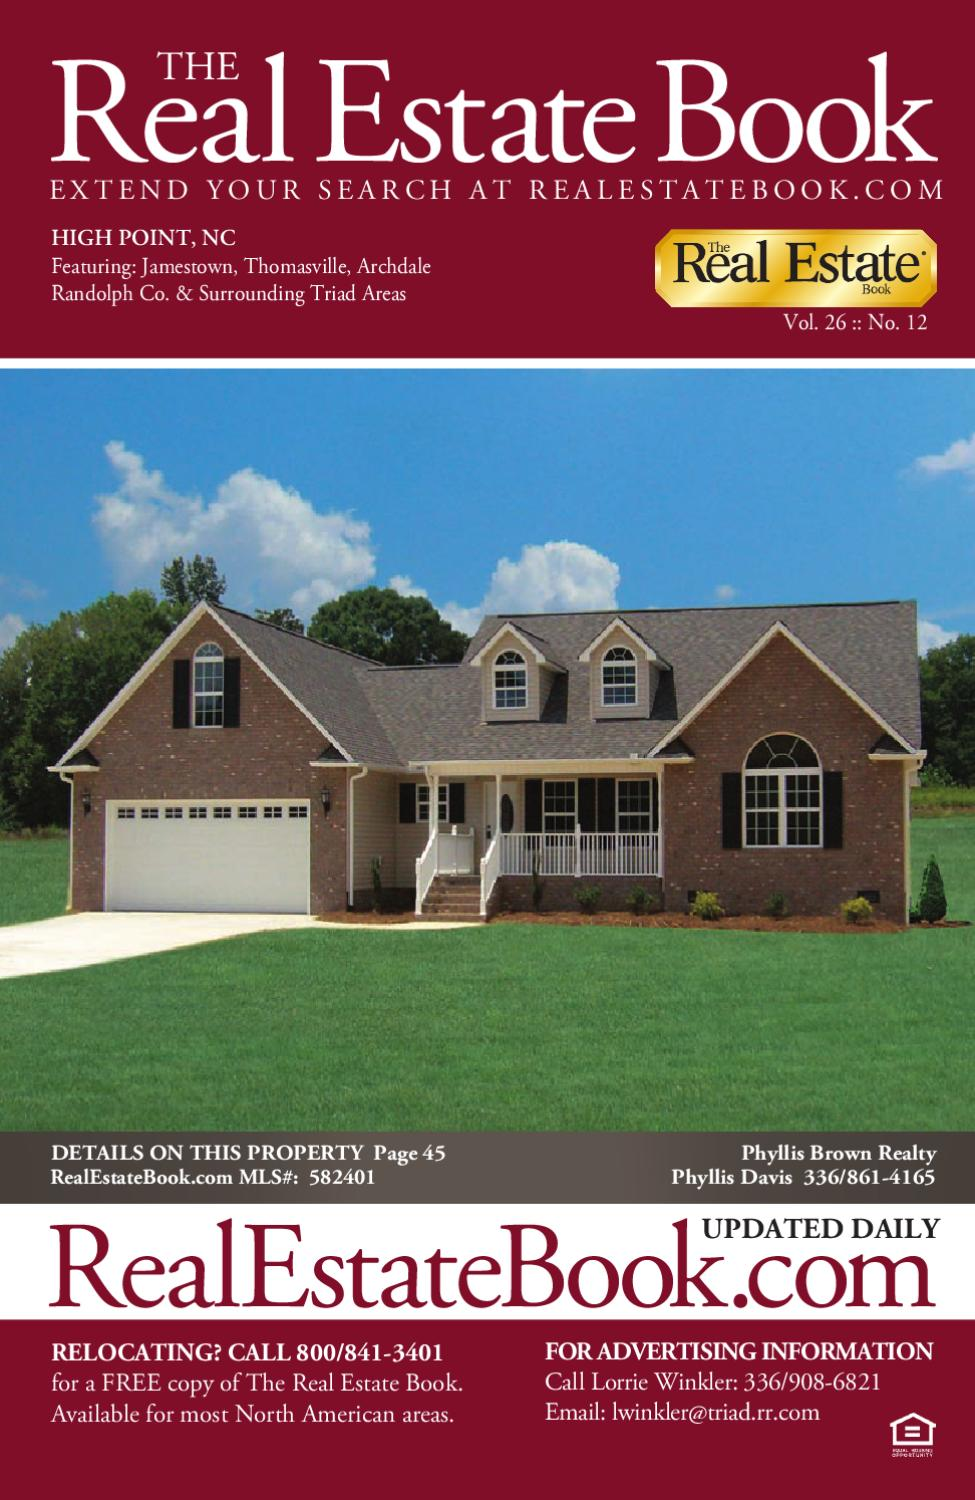 The Real Estate Book of High Point 26 #12 by The Real ...